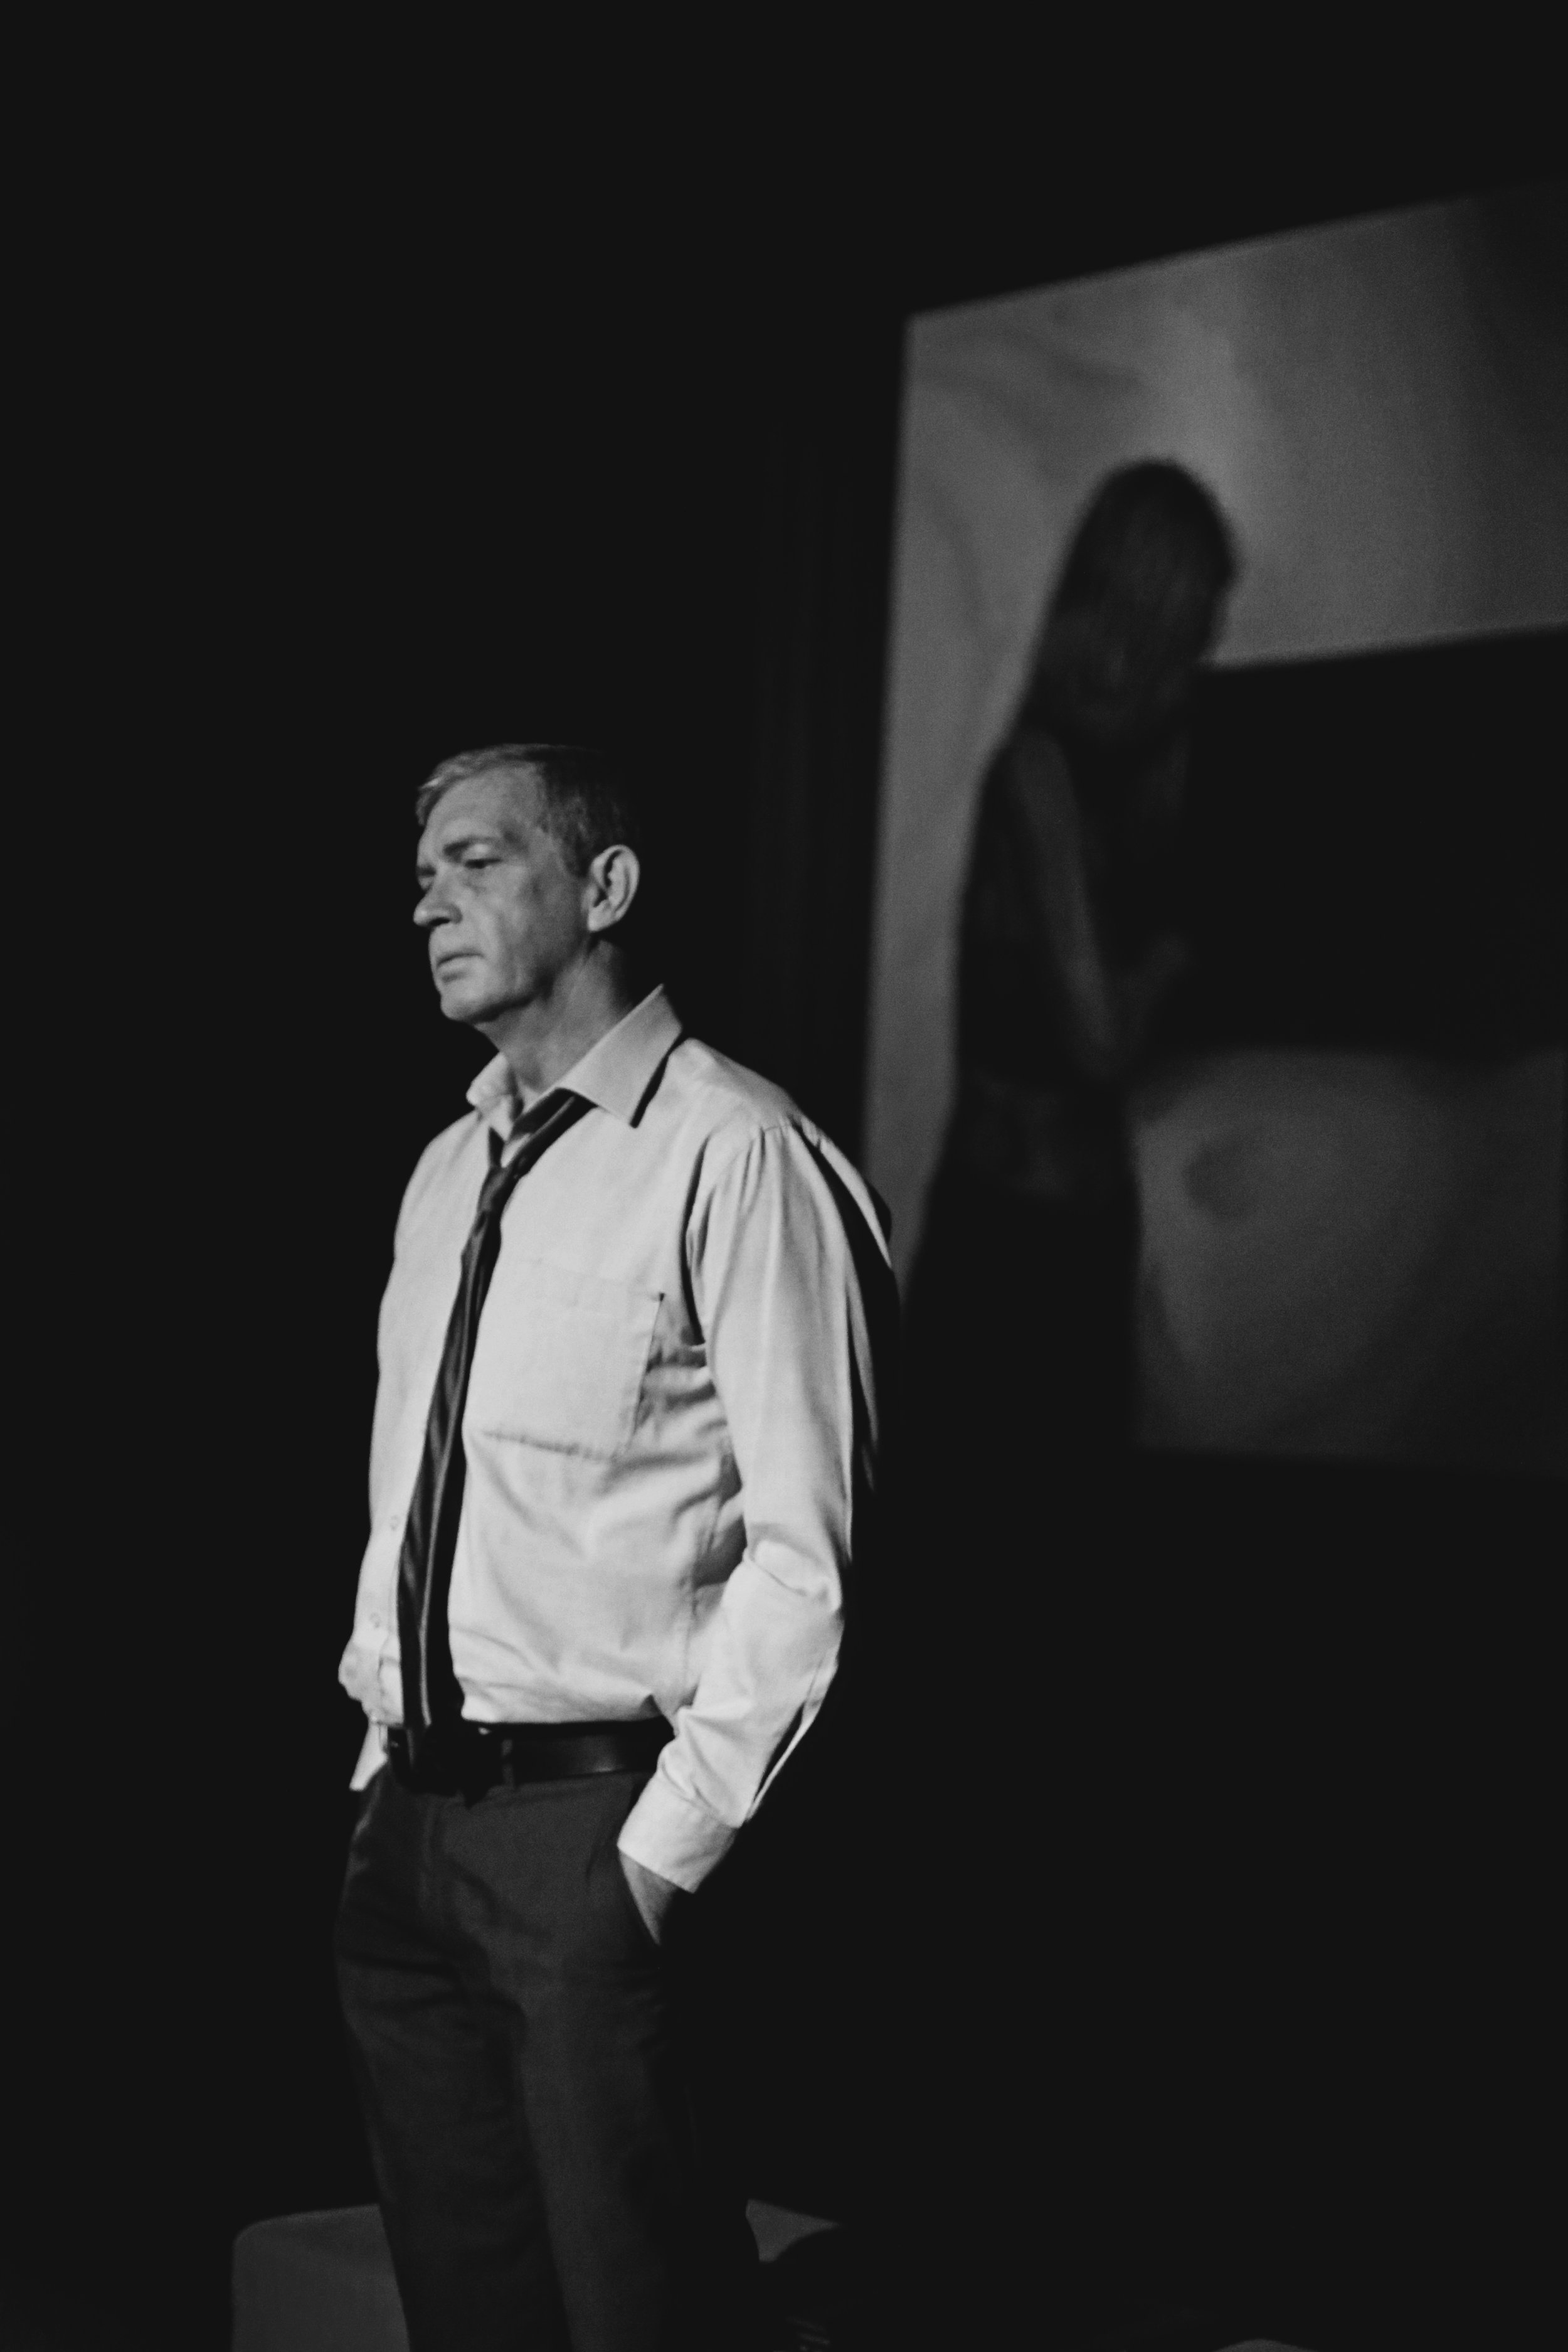 Pictured:The Lawyer (Ron Kelly), foreground, on stage, with The Biology Teacher (Jacqui Story) on screen.  NOTE  Picture credit:Deelan Do.